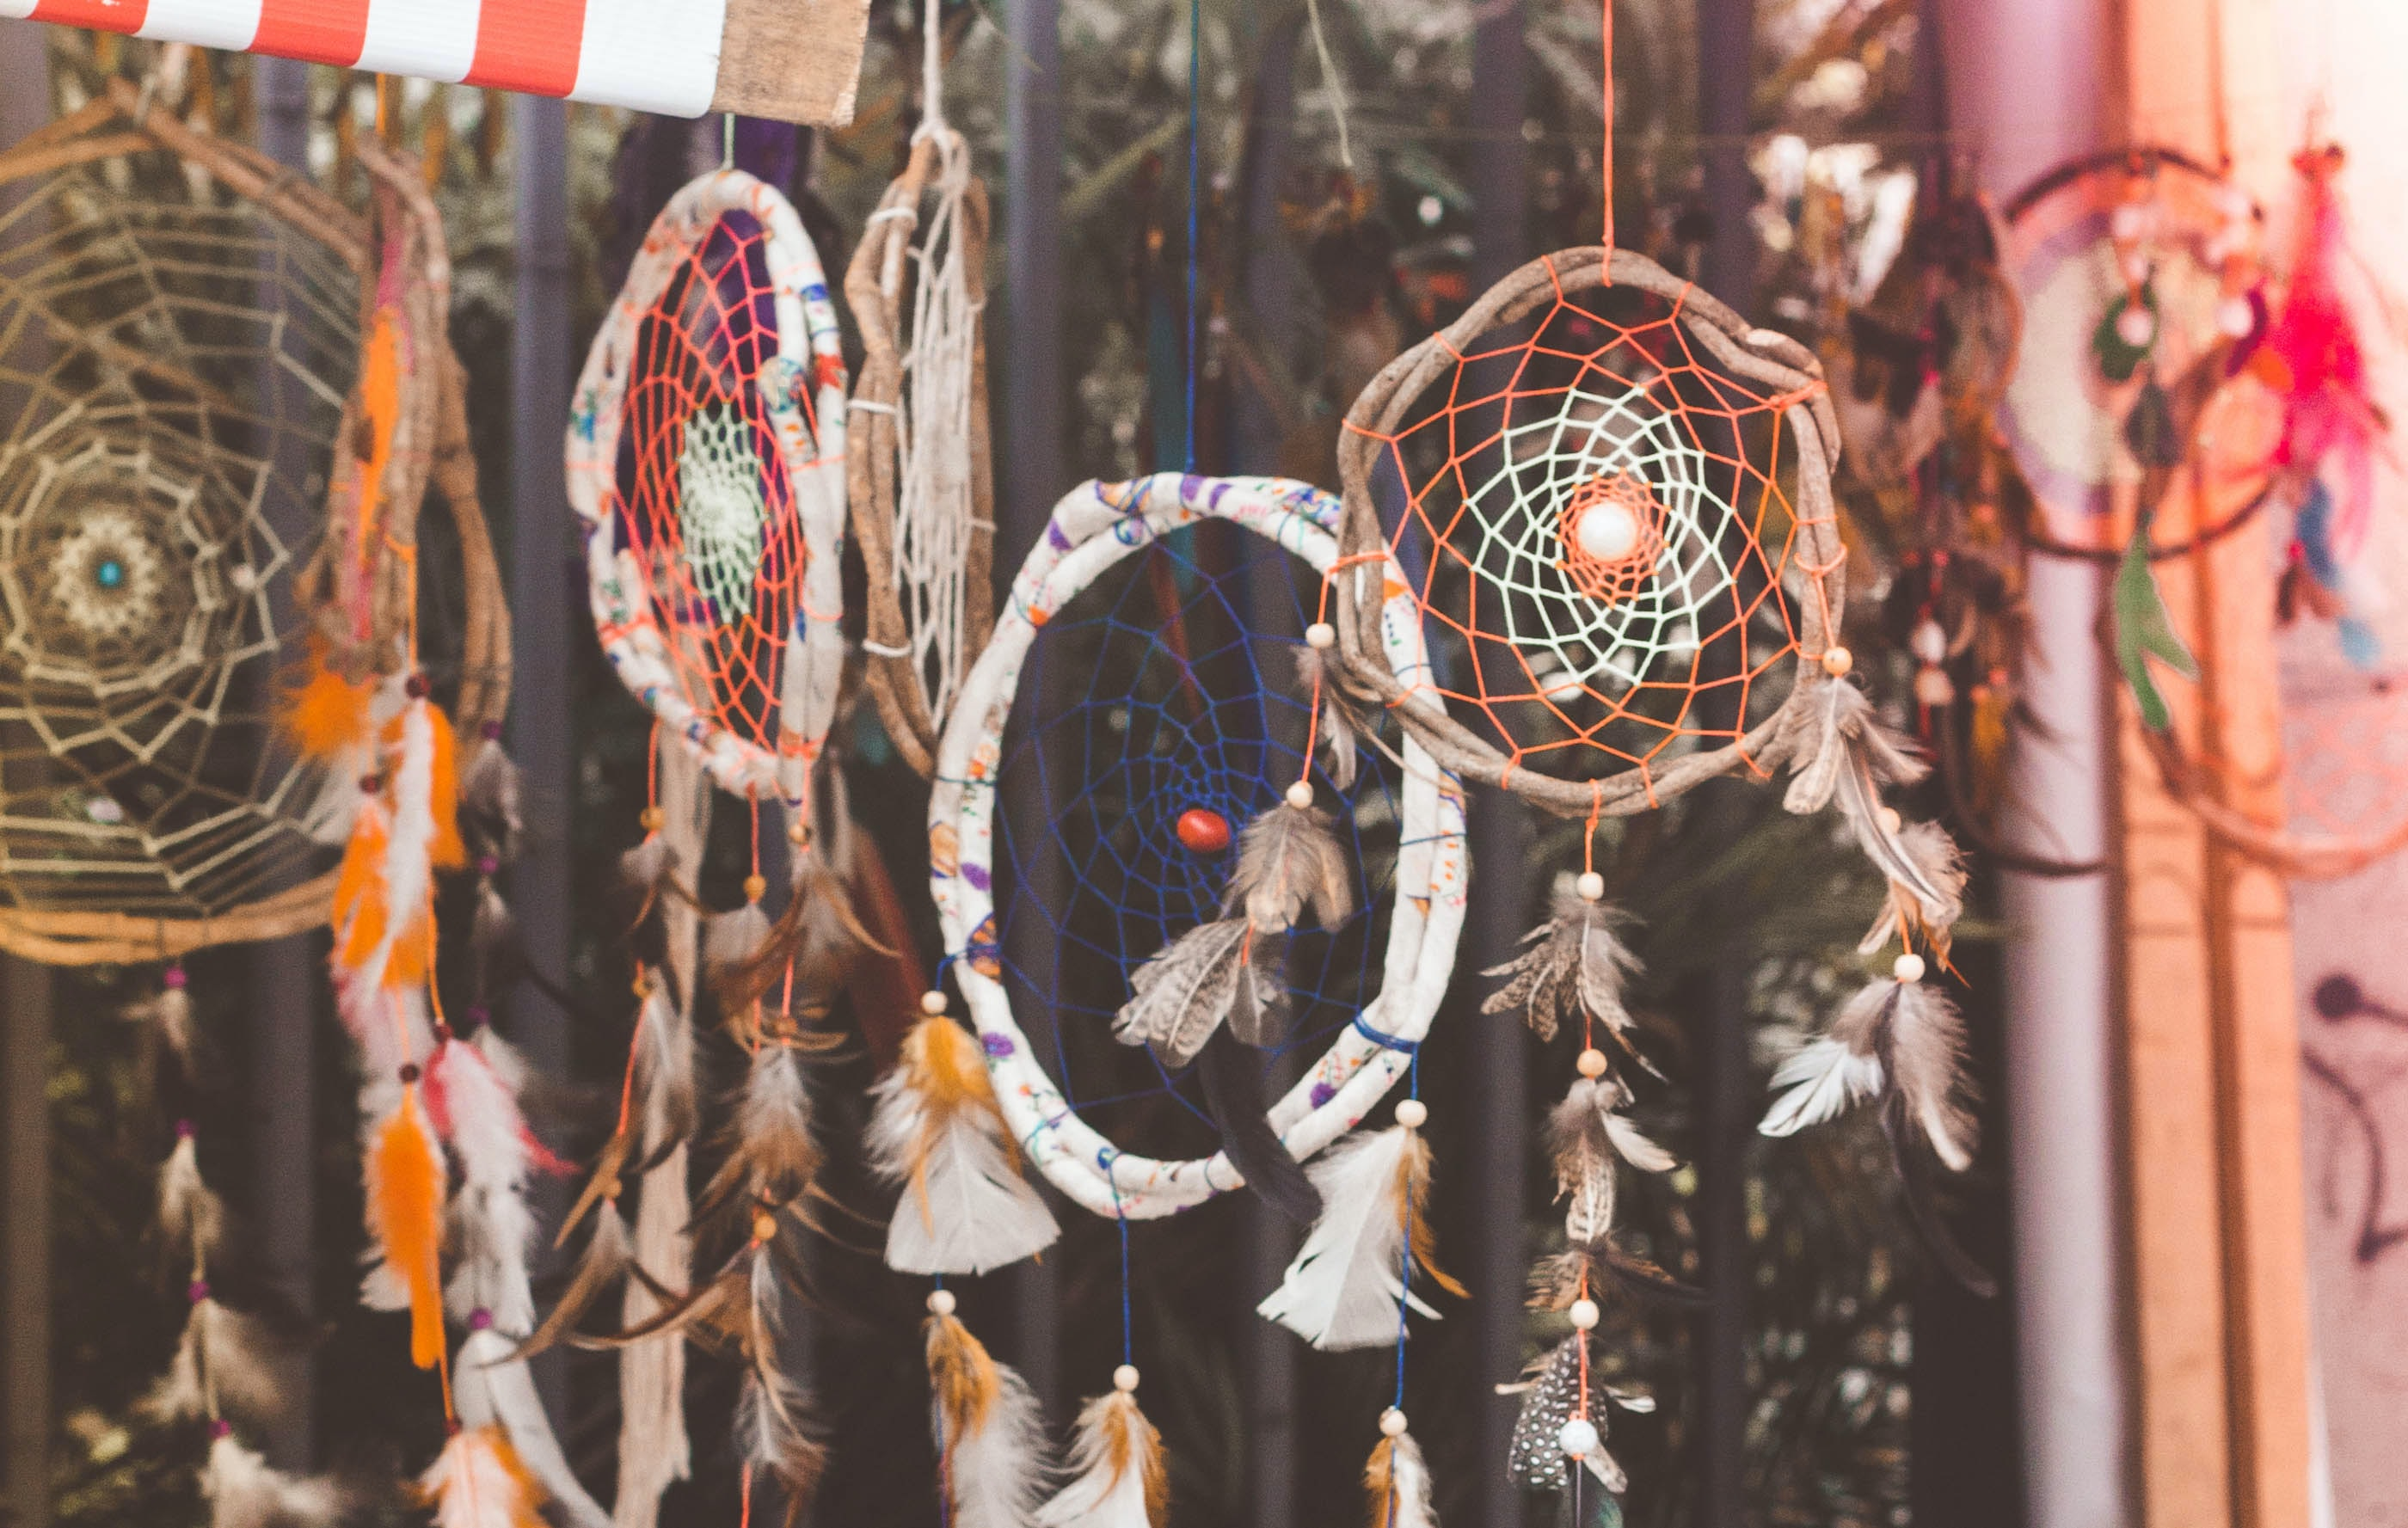 closeup photo of hanging dream catchers